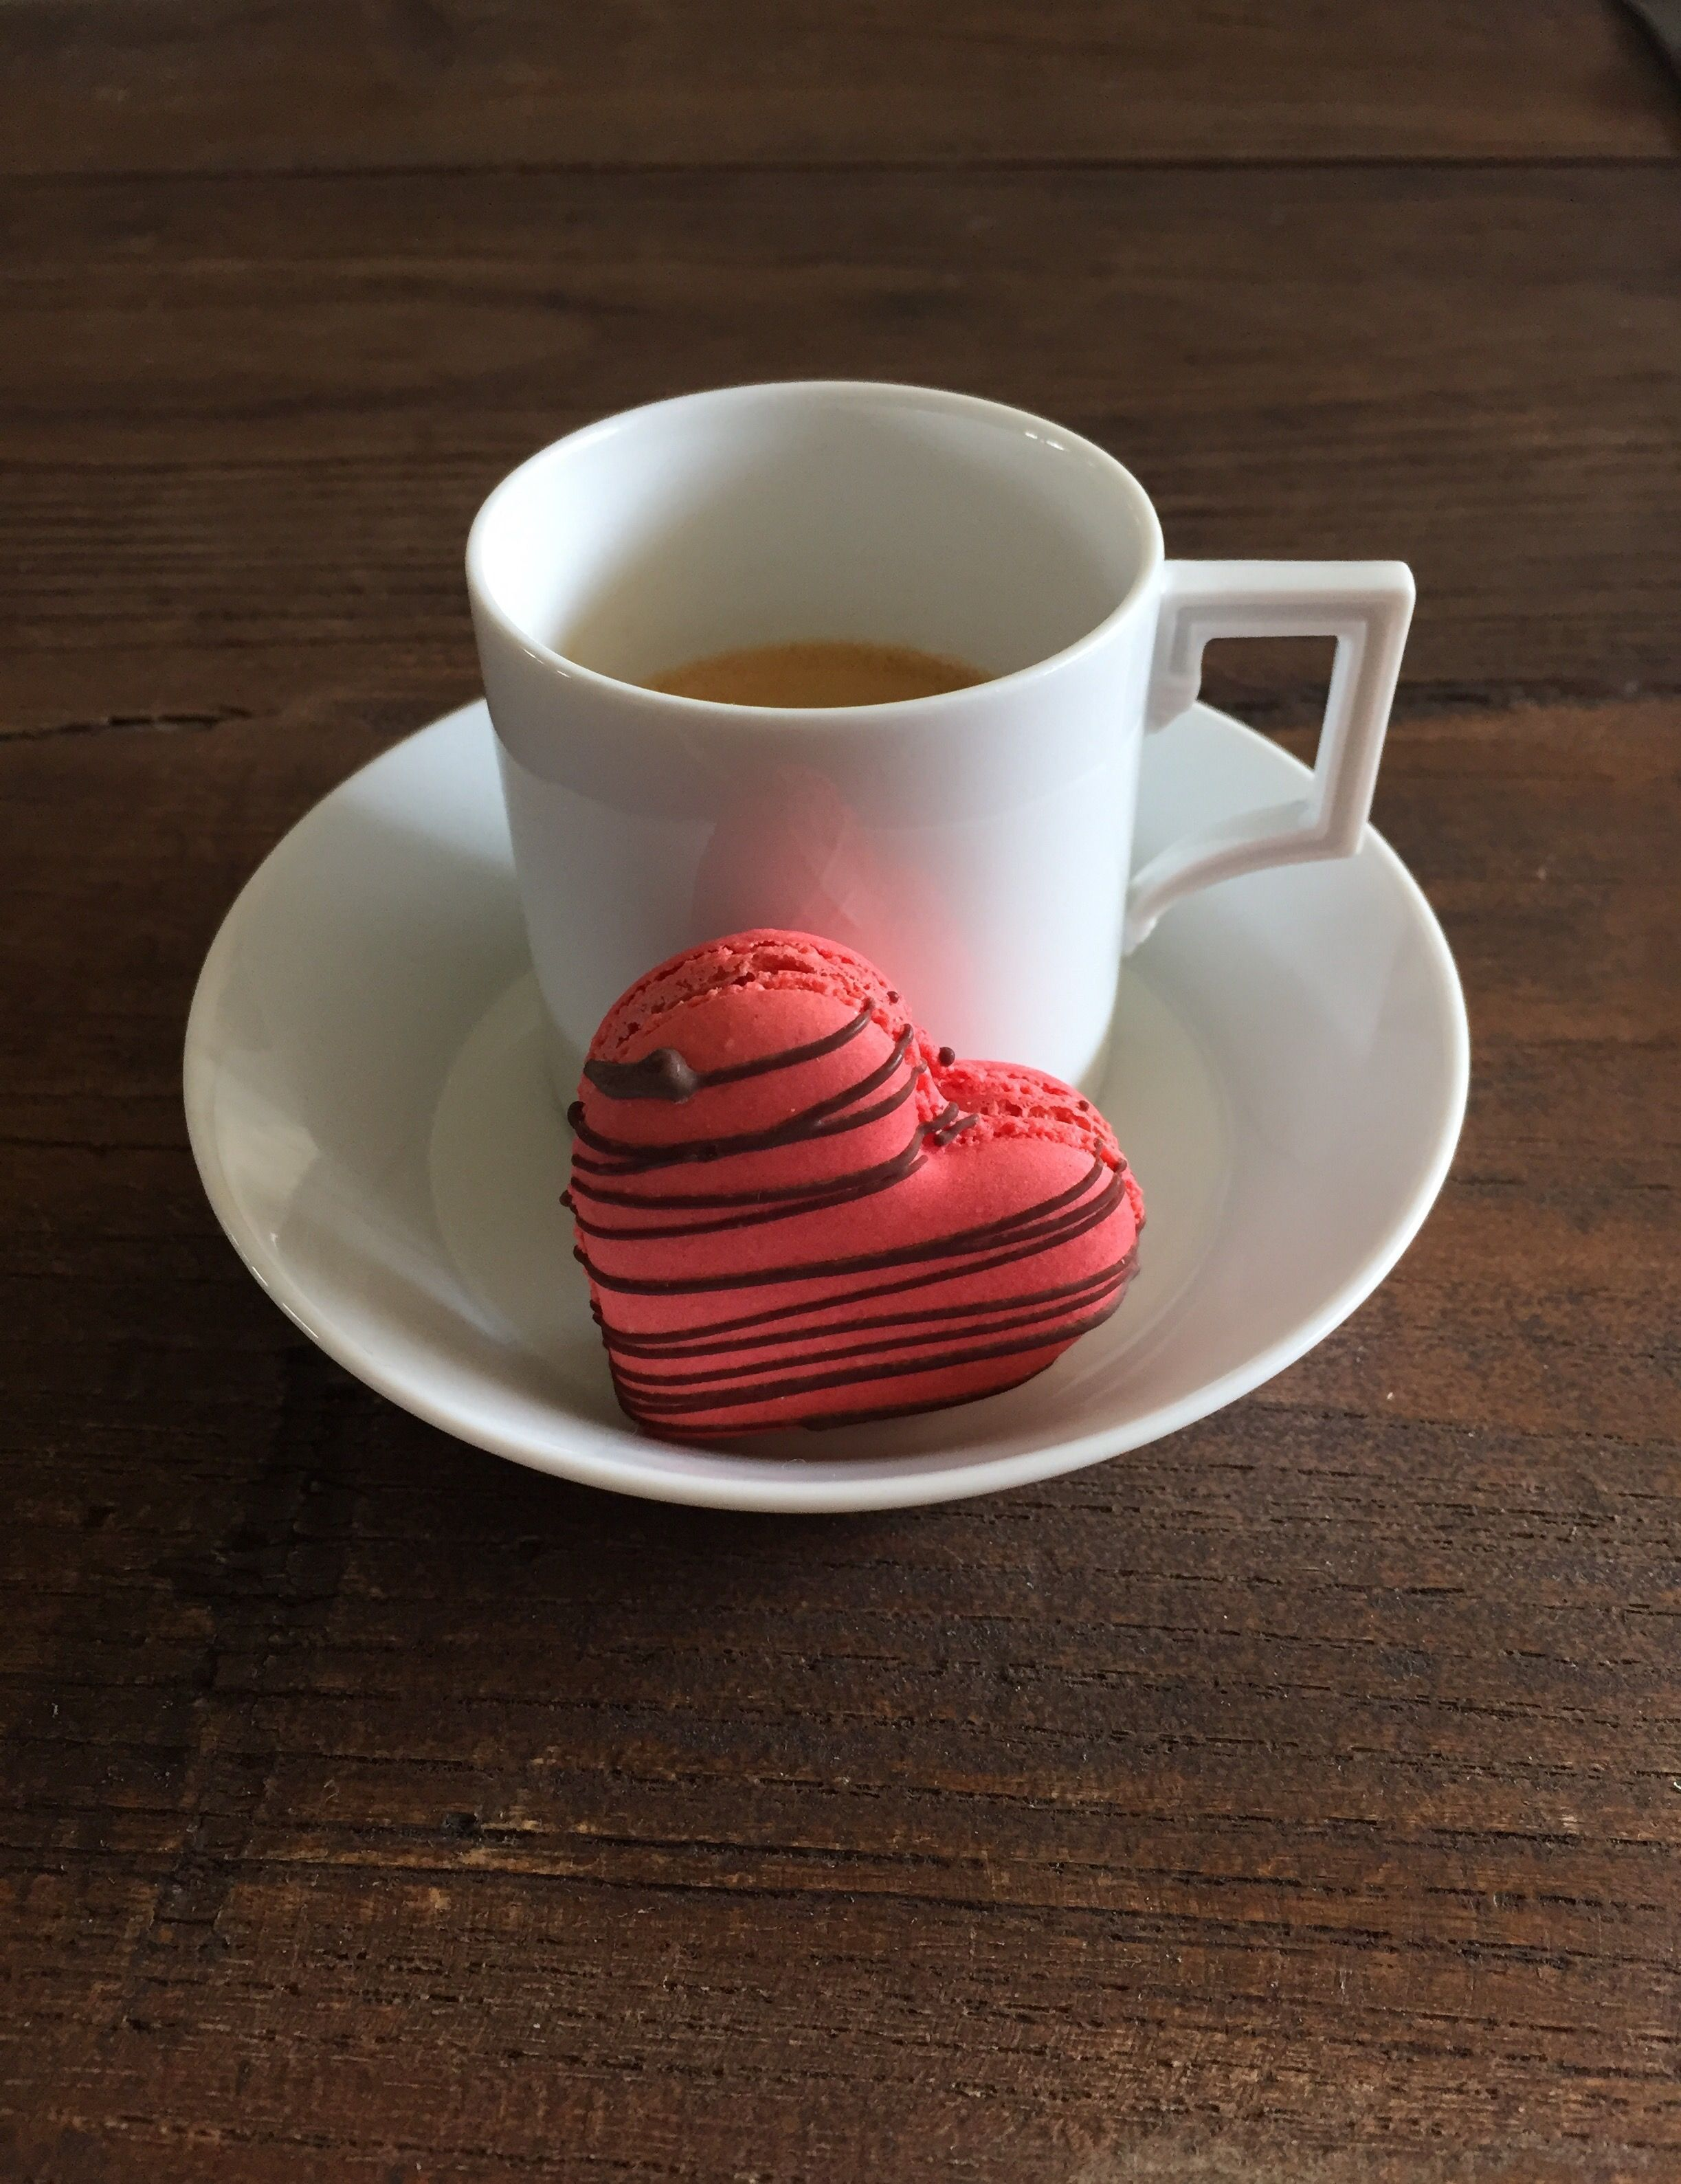 My weekend tastes better with espresso and macarons by